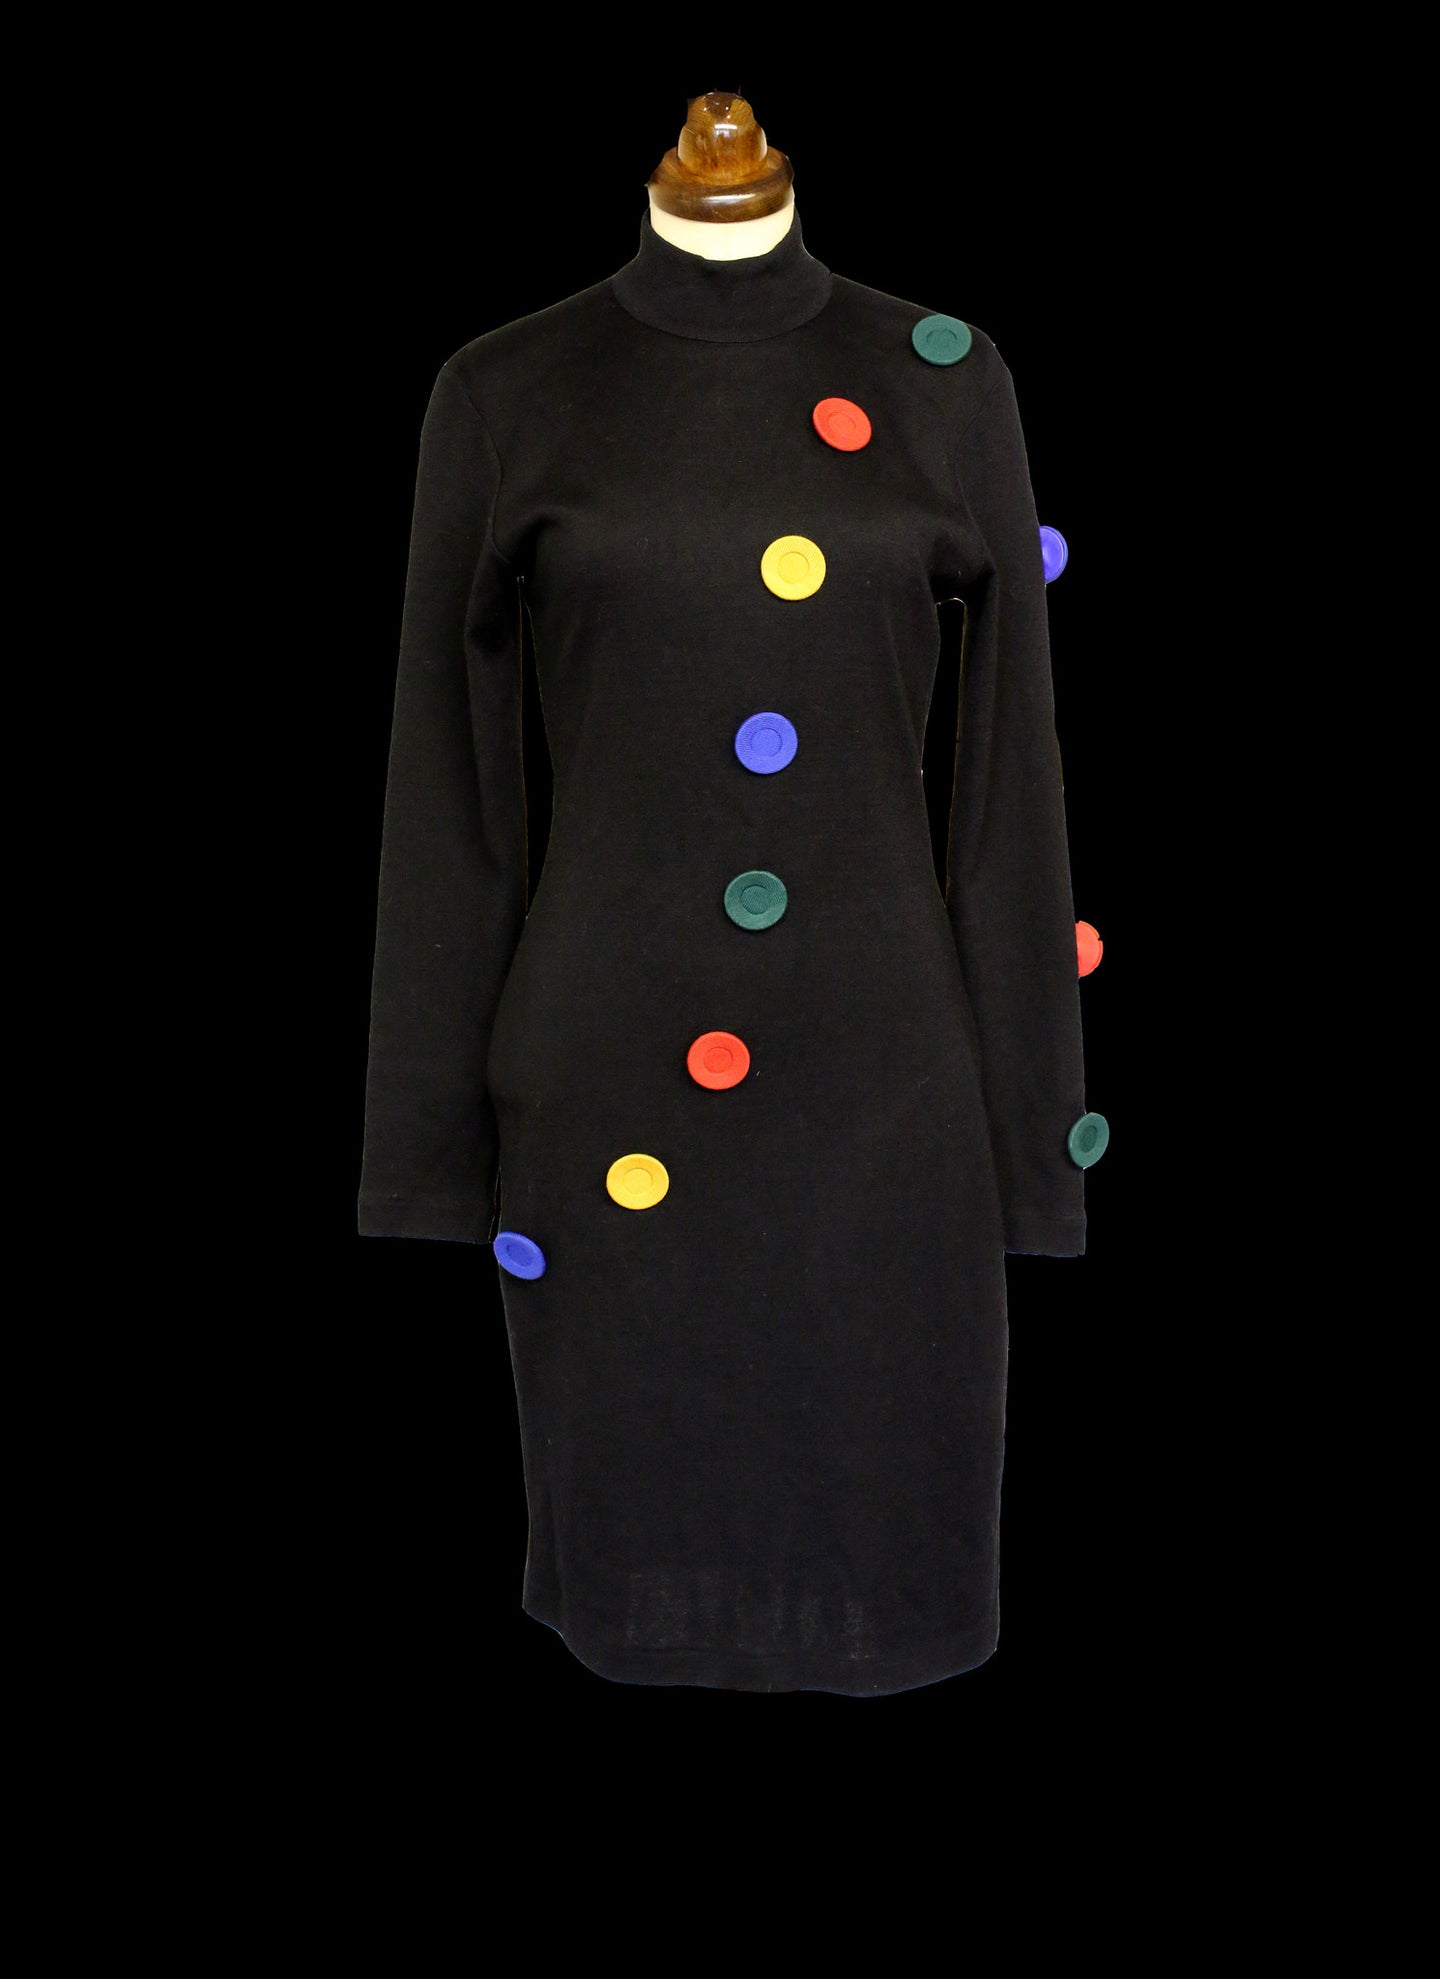 Vintage 1980s Black Button Pop Art Dress